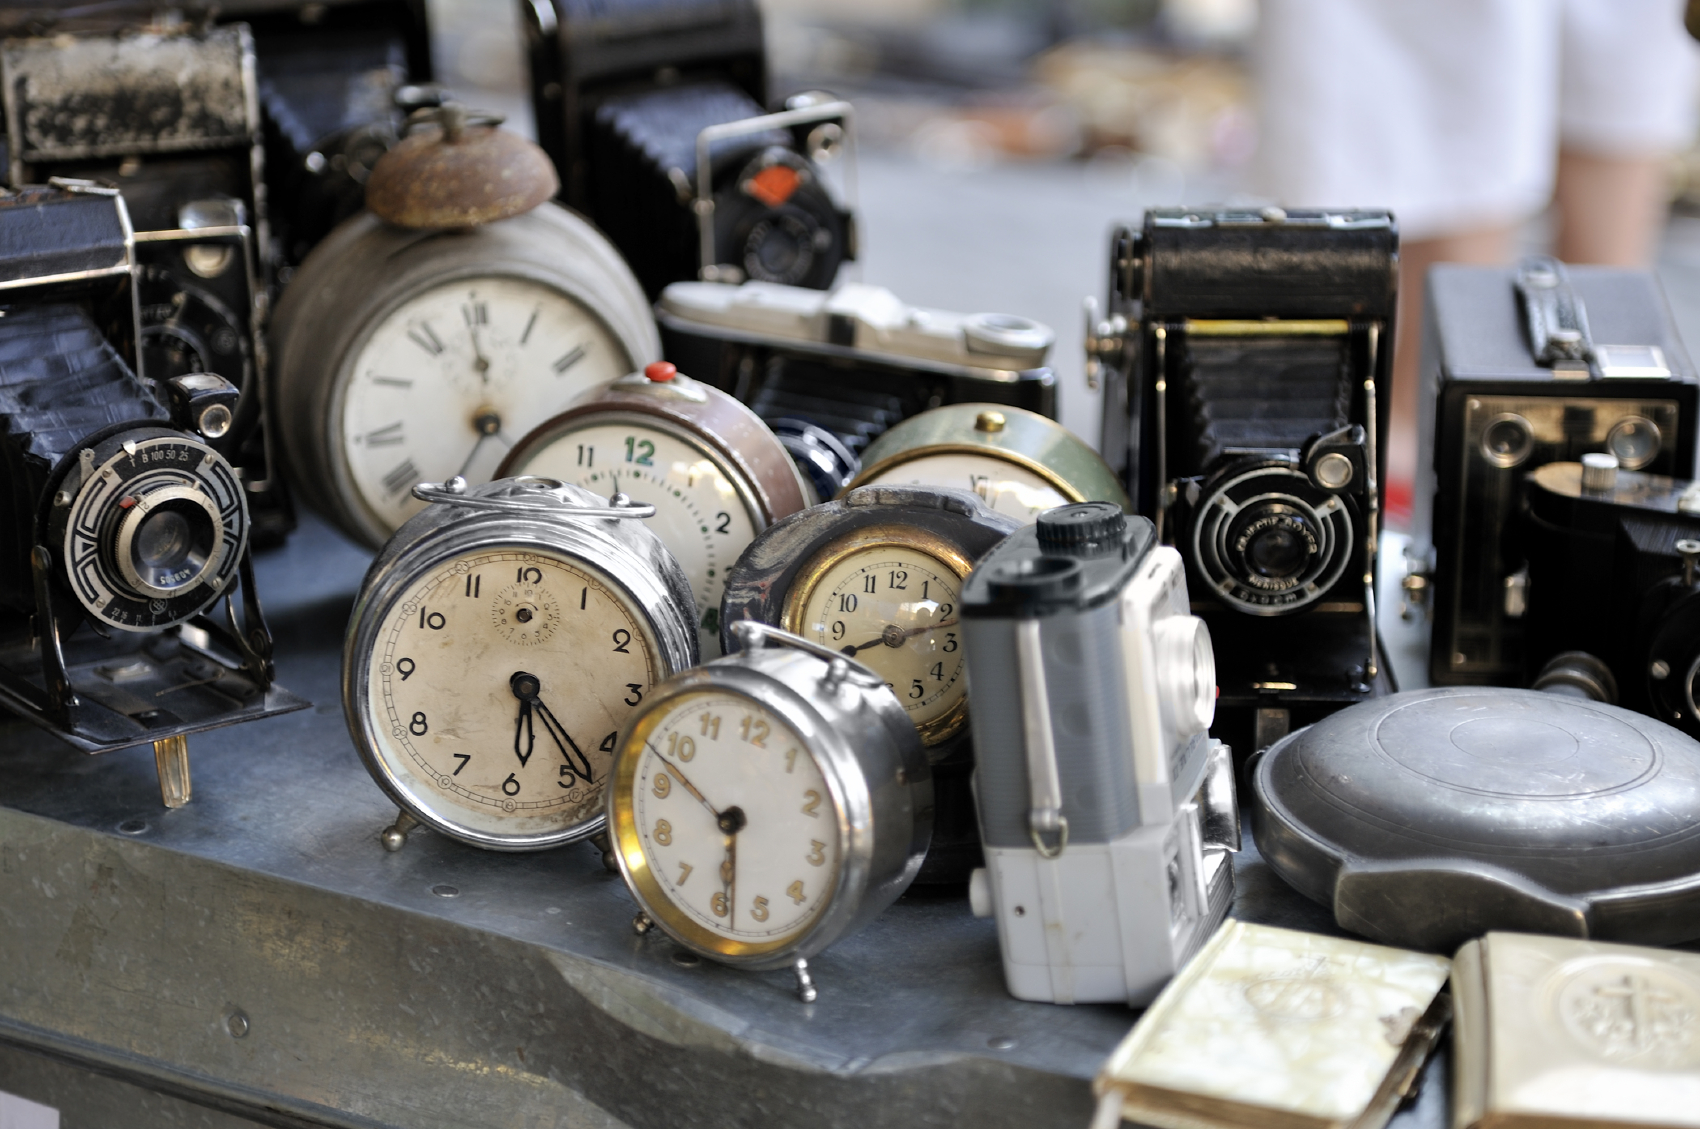 clock collection_iStock_000010216428_Medium